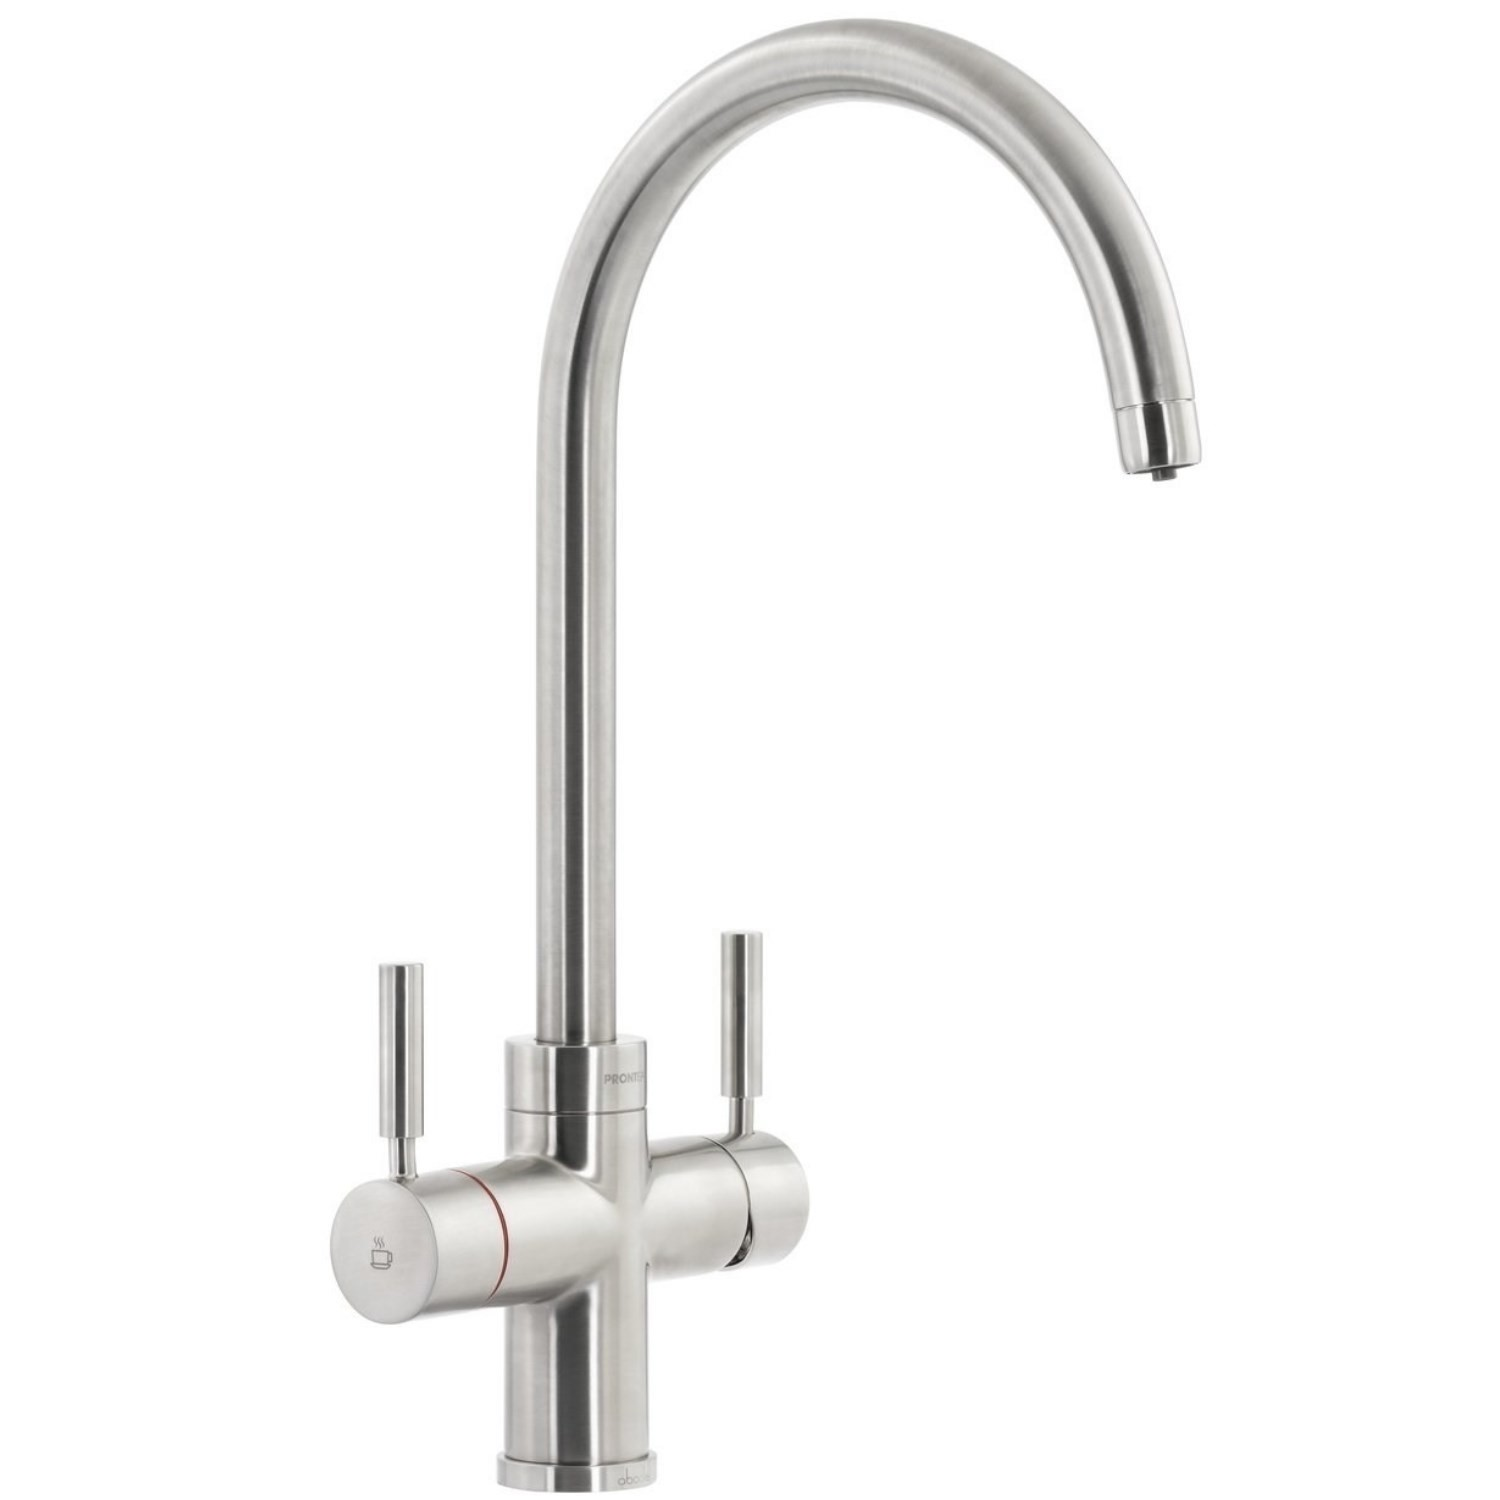 Abode PT1102 Pronteau 3 in 1 Prostream Monobloc Instant Boiling Water Tap -  Brushed Nickel